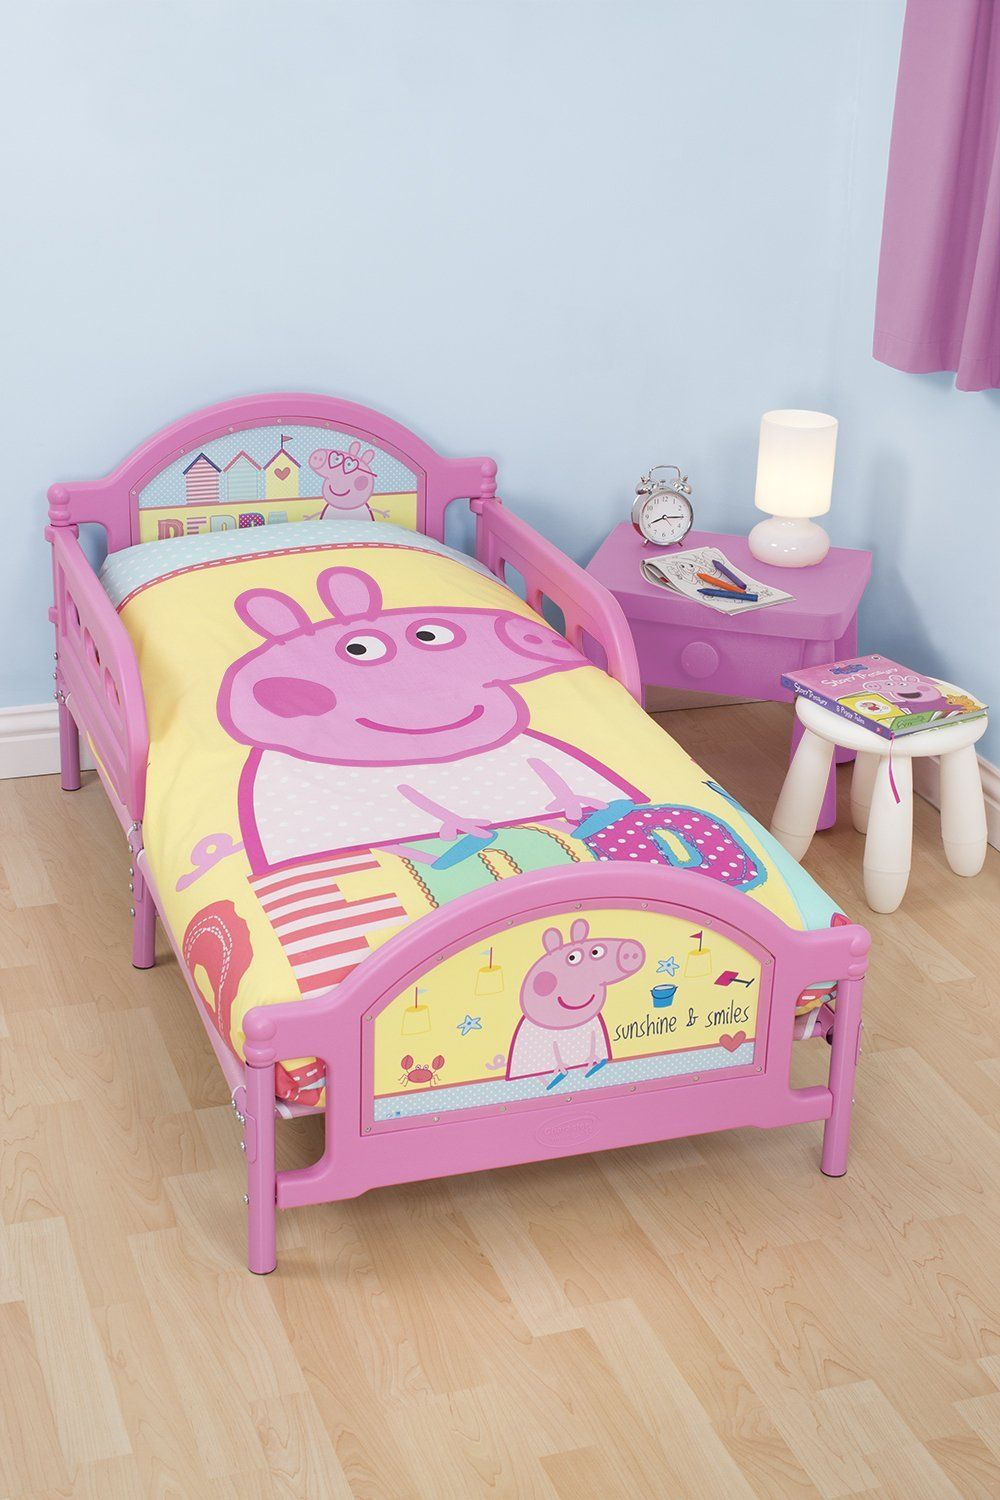 Peppa Pig Bedding Toddler Bed Girl Toddler Bed Frame